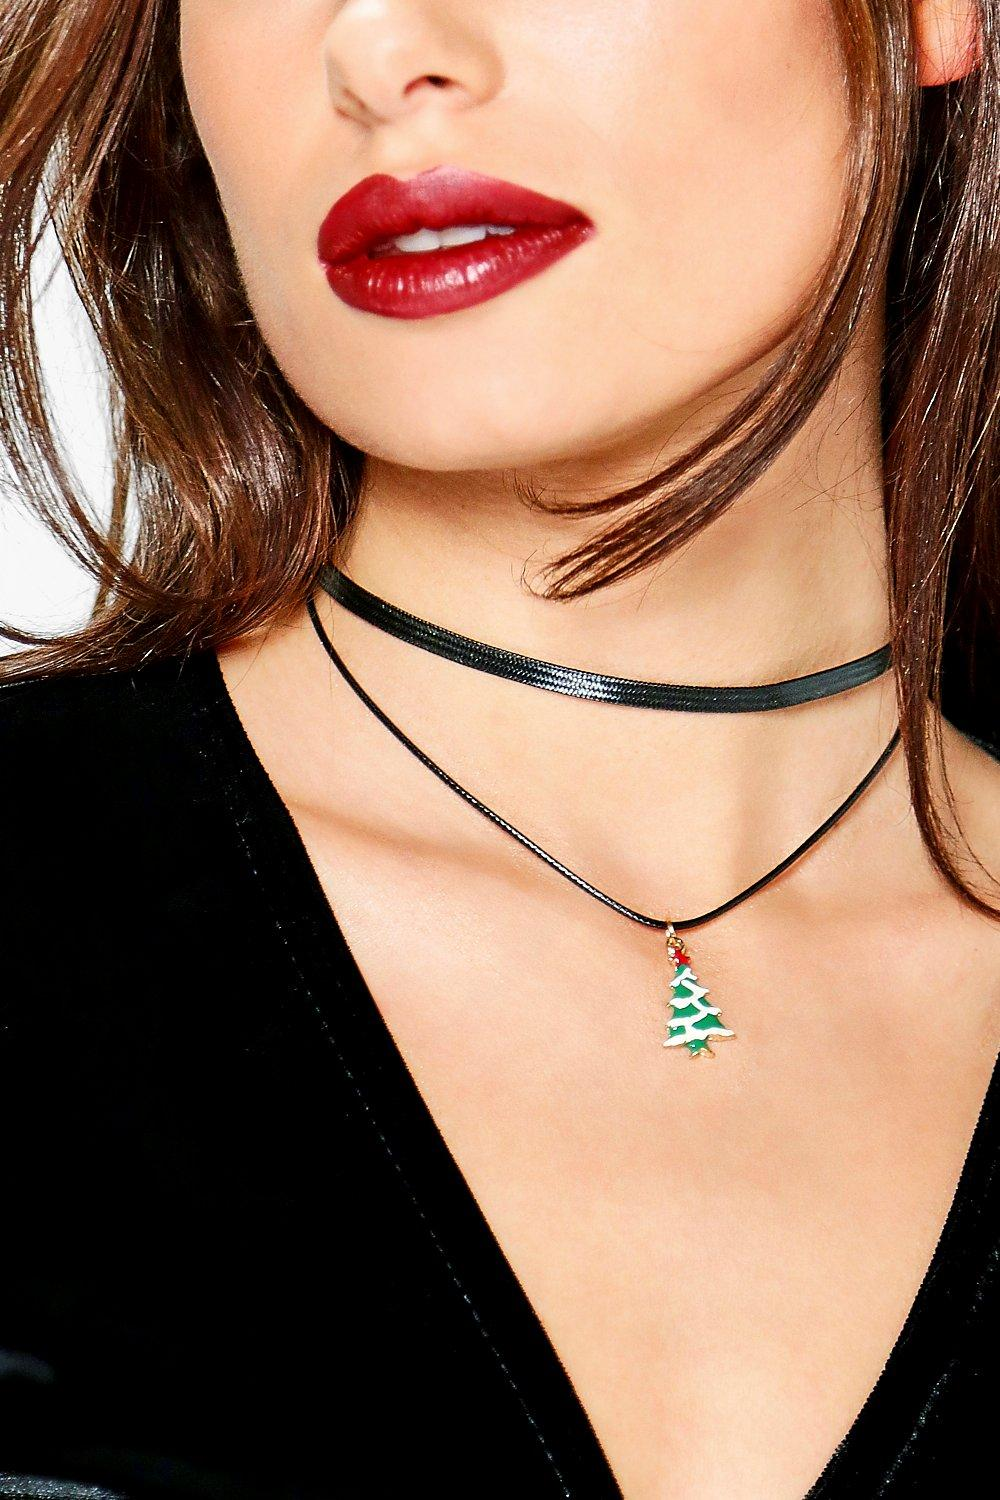 Lucy Christmas Thin Cord Tree Pendant Choker